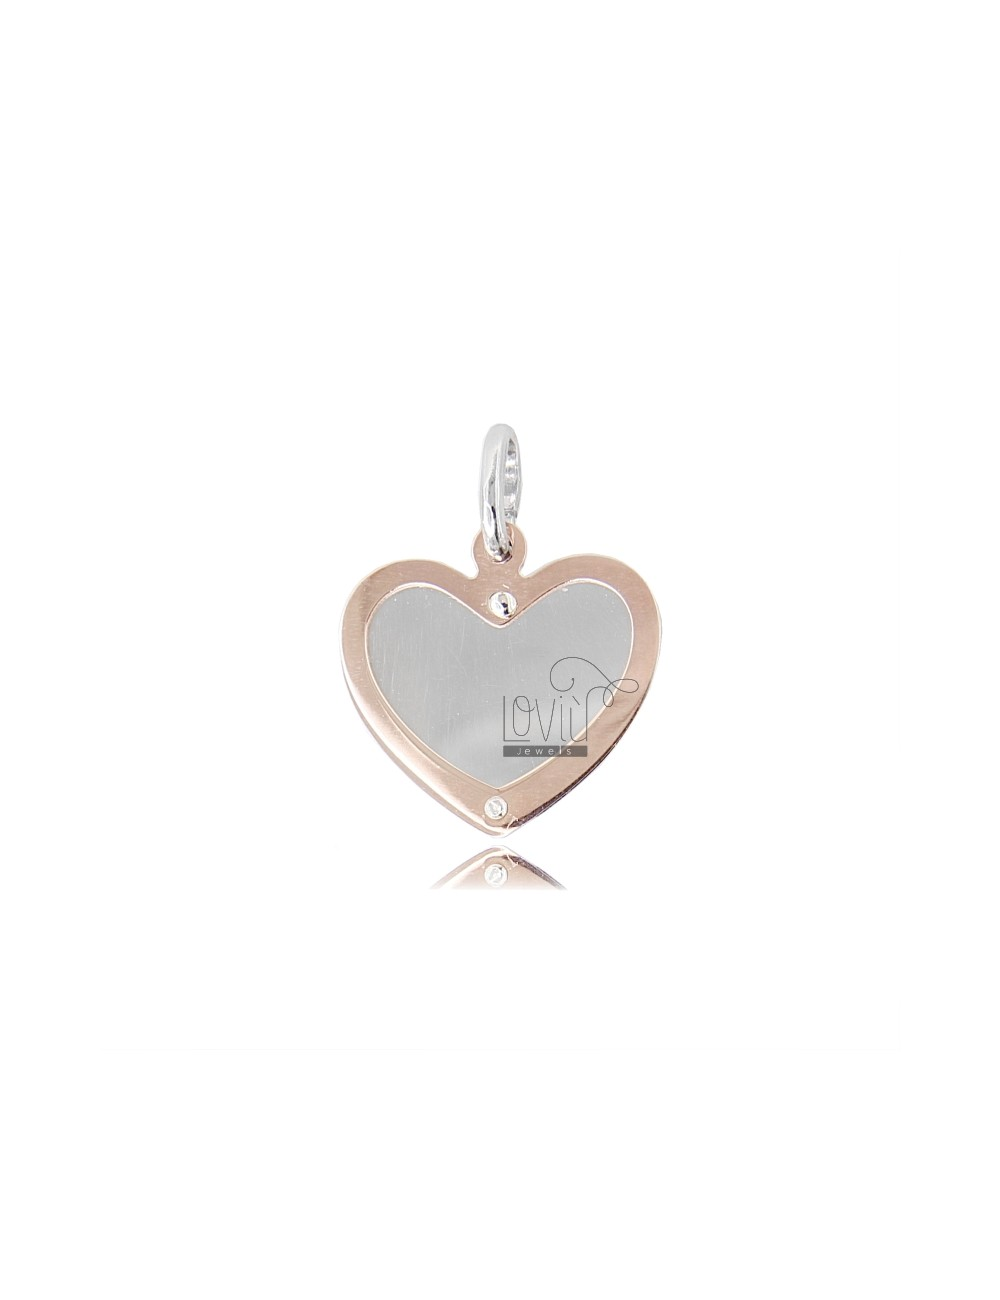 HEART HEART PENDANT WITH ROSE GOLD PLATED SILVER 925